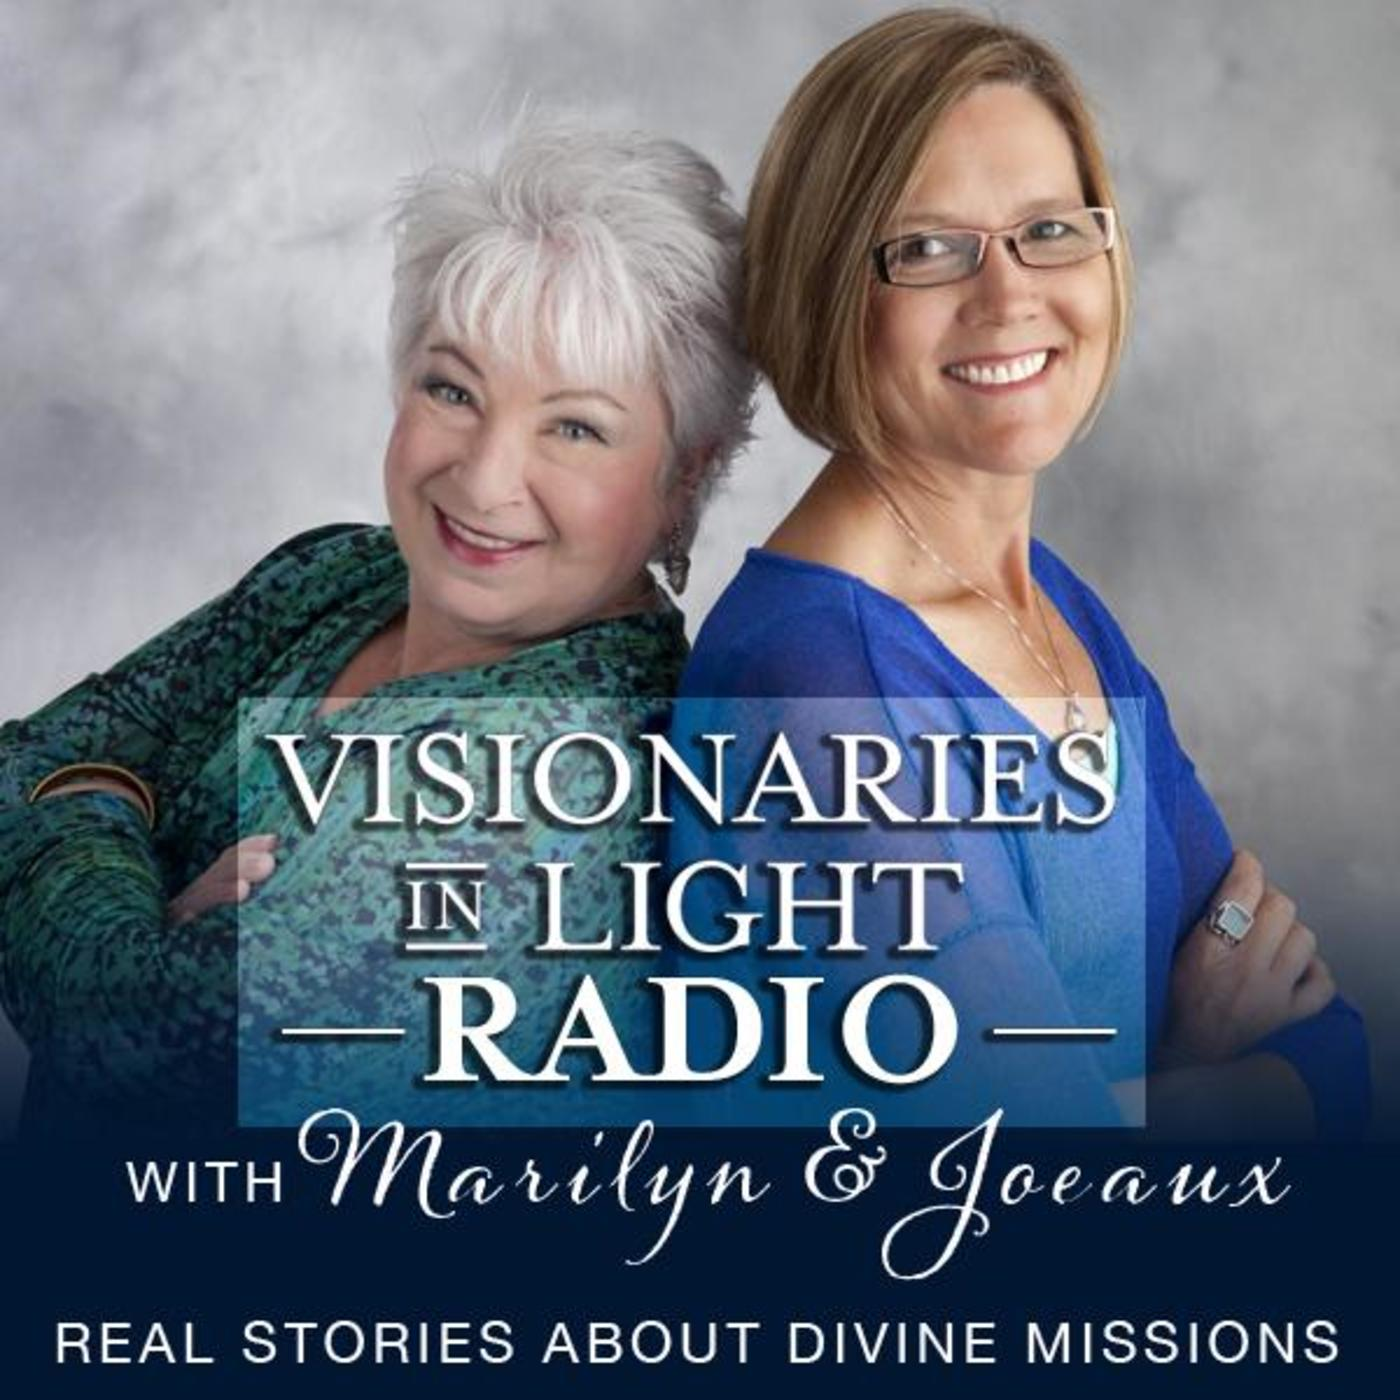 Visionaries in Light